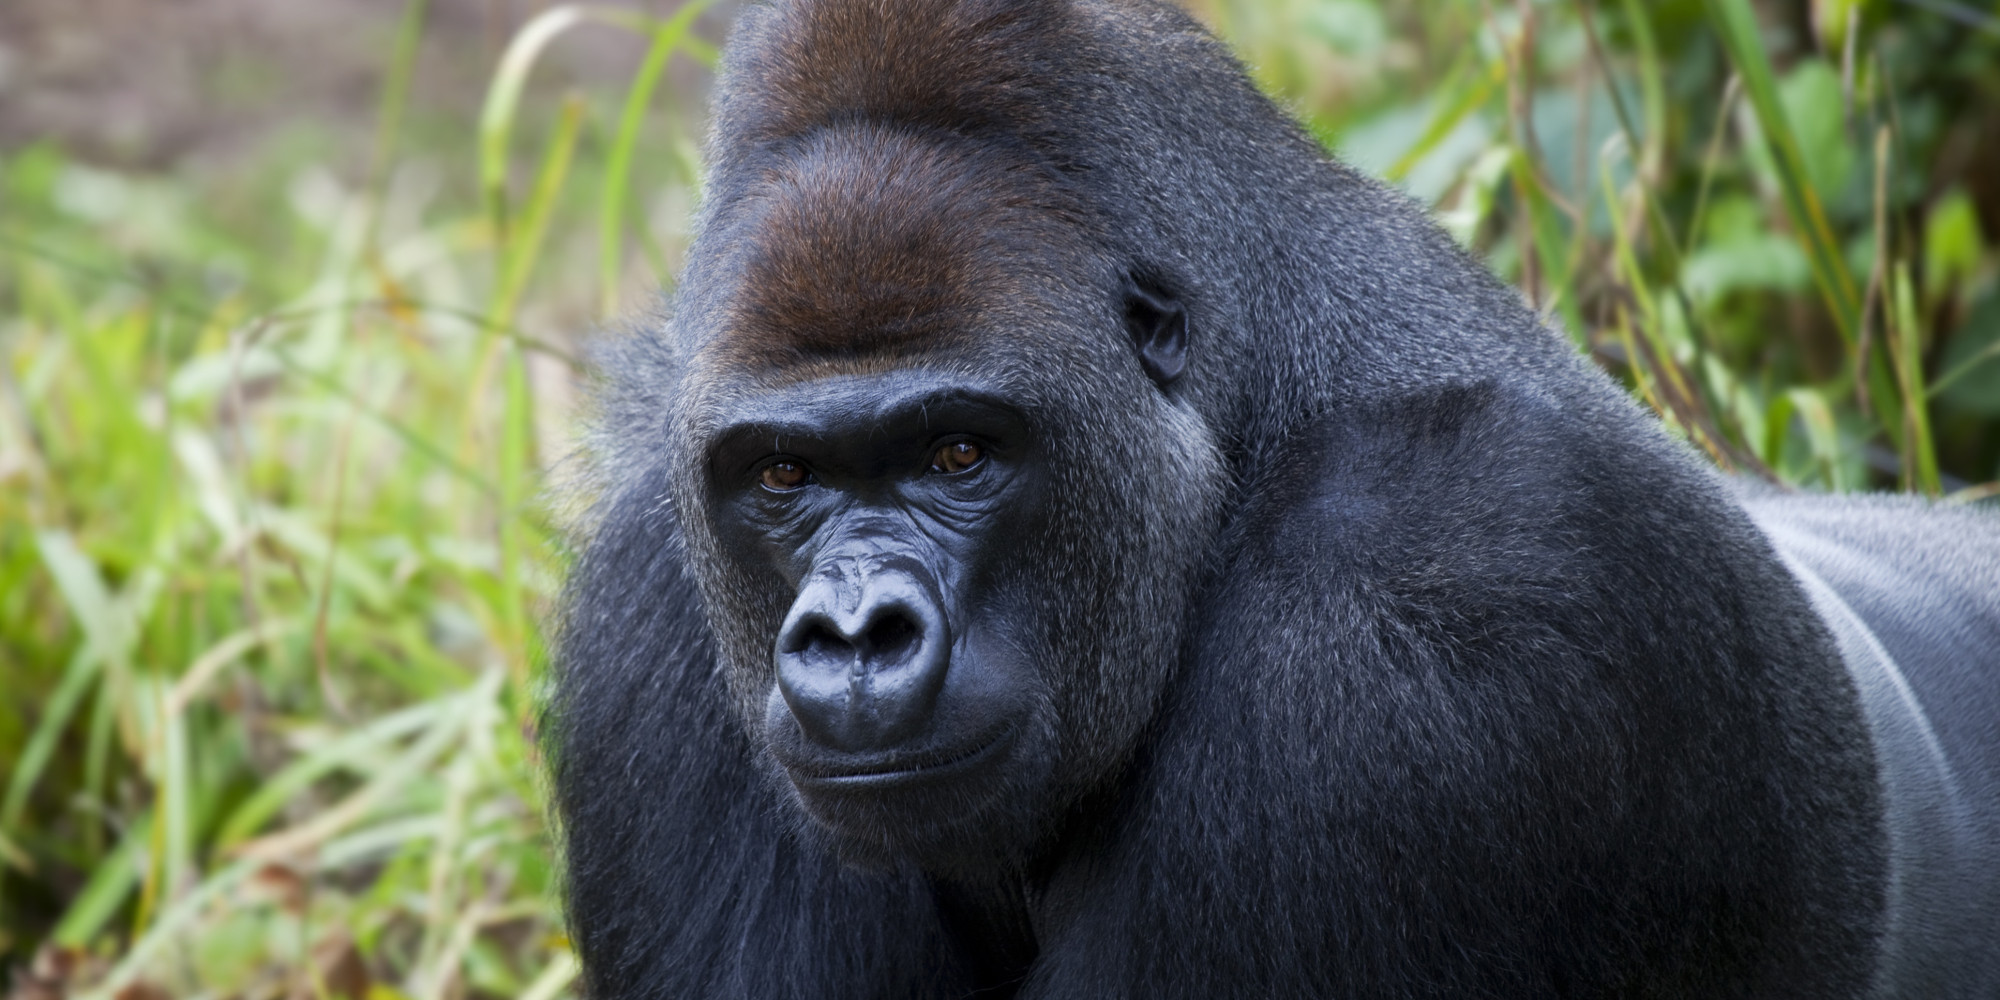 The Value of a Gorilla vs. a Human | HuffPost